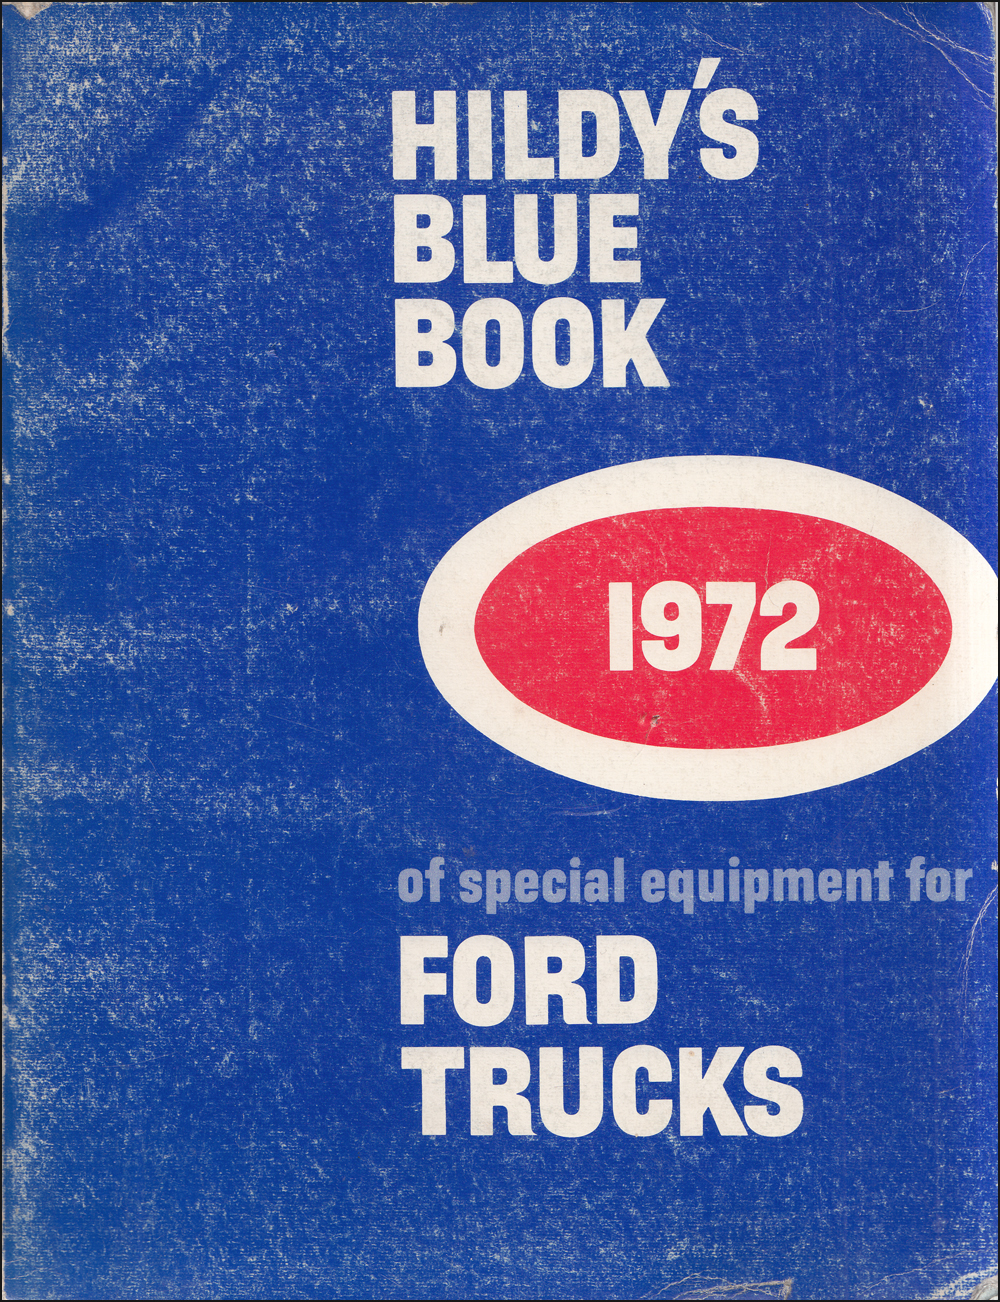 1972 Ford Truck Hildy's Blue Book Special Equipment Dealer Album